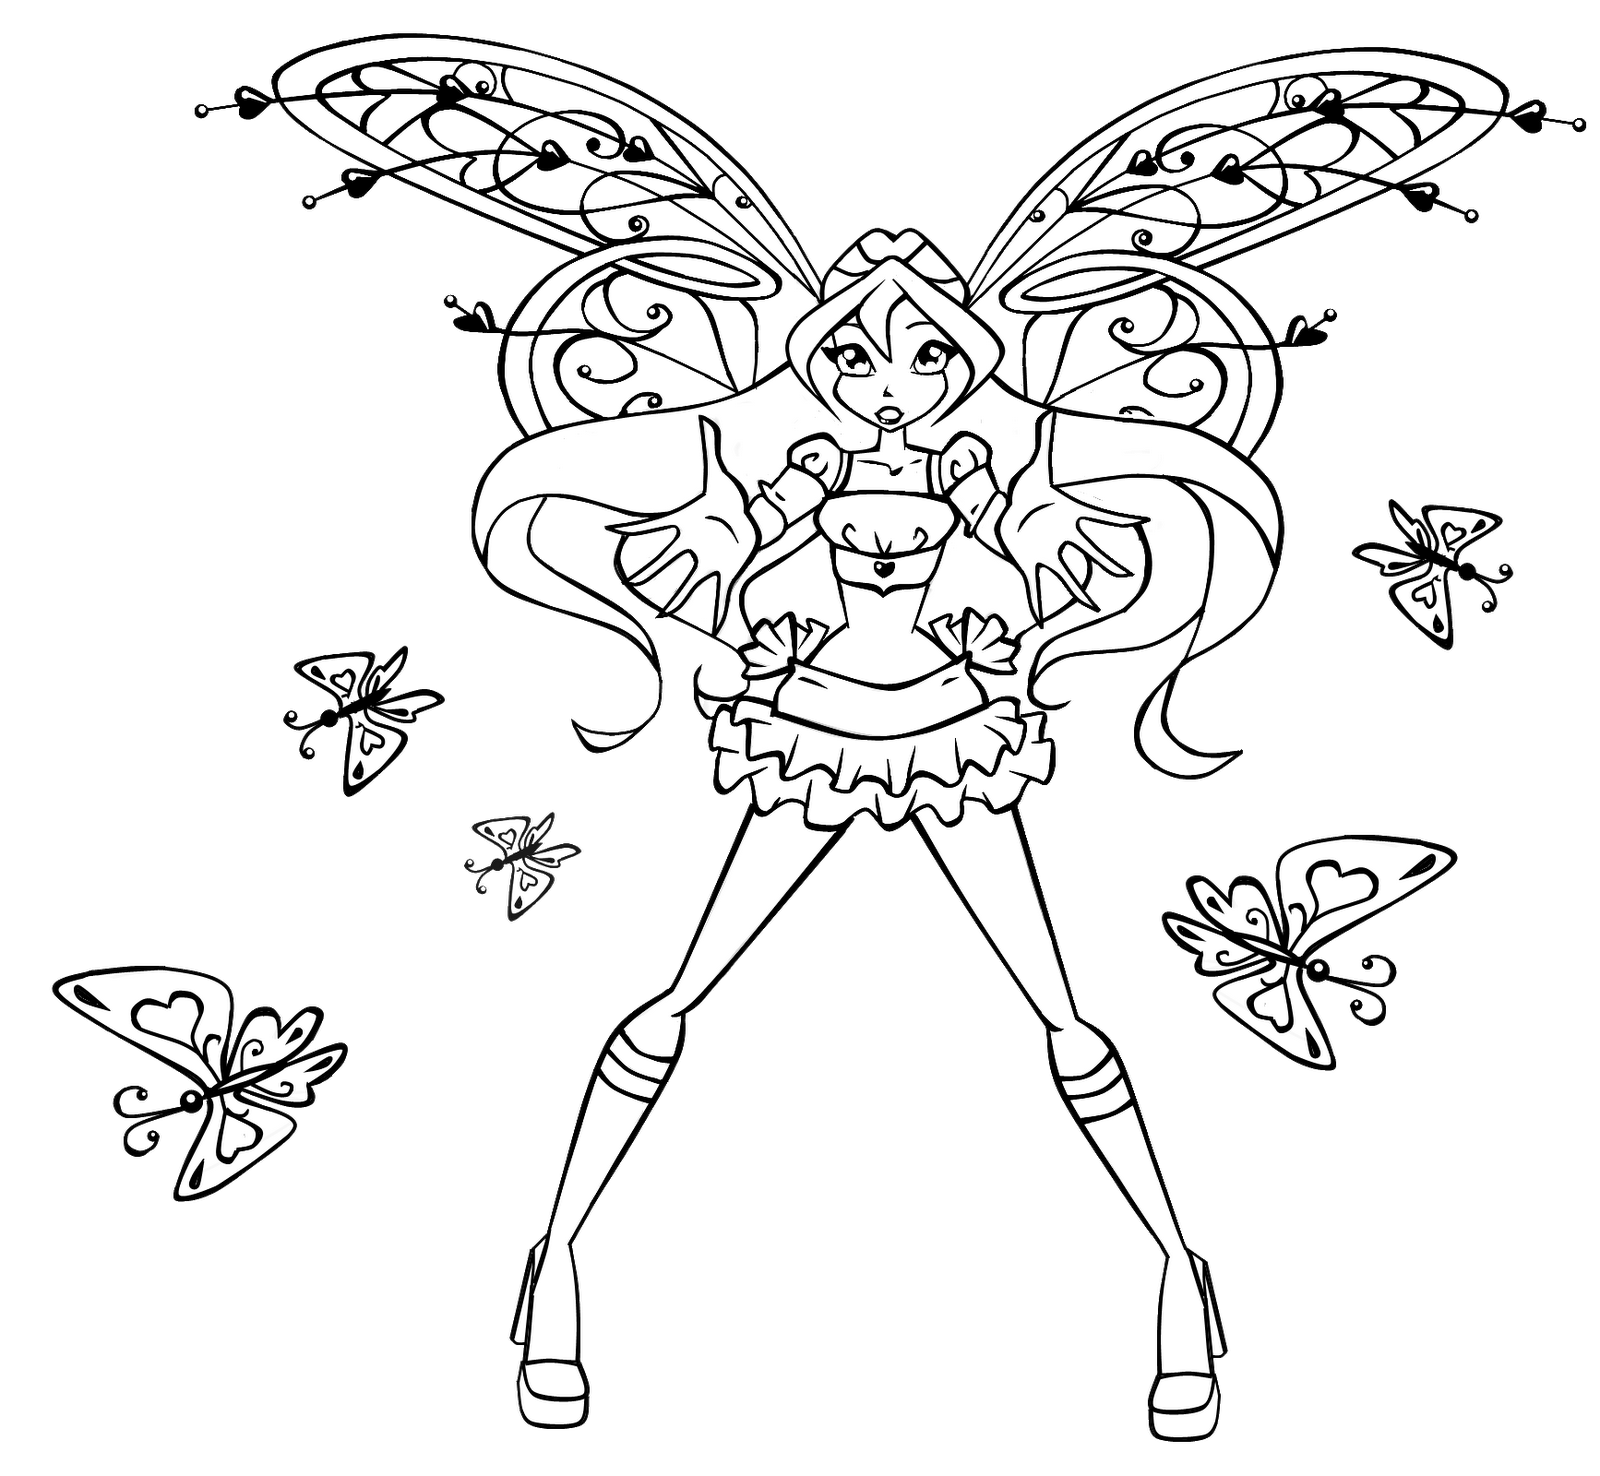 winx club bloom believix coloring pages winx harmonix coloring pages to download and print for free club pages believix coloring winx bloom